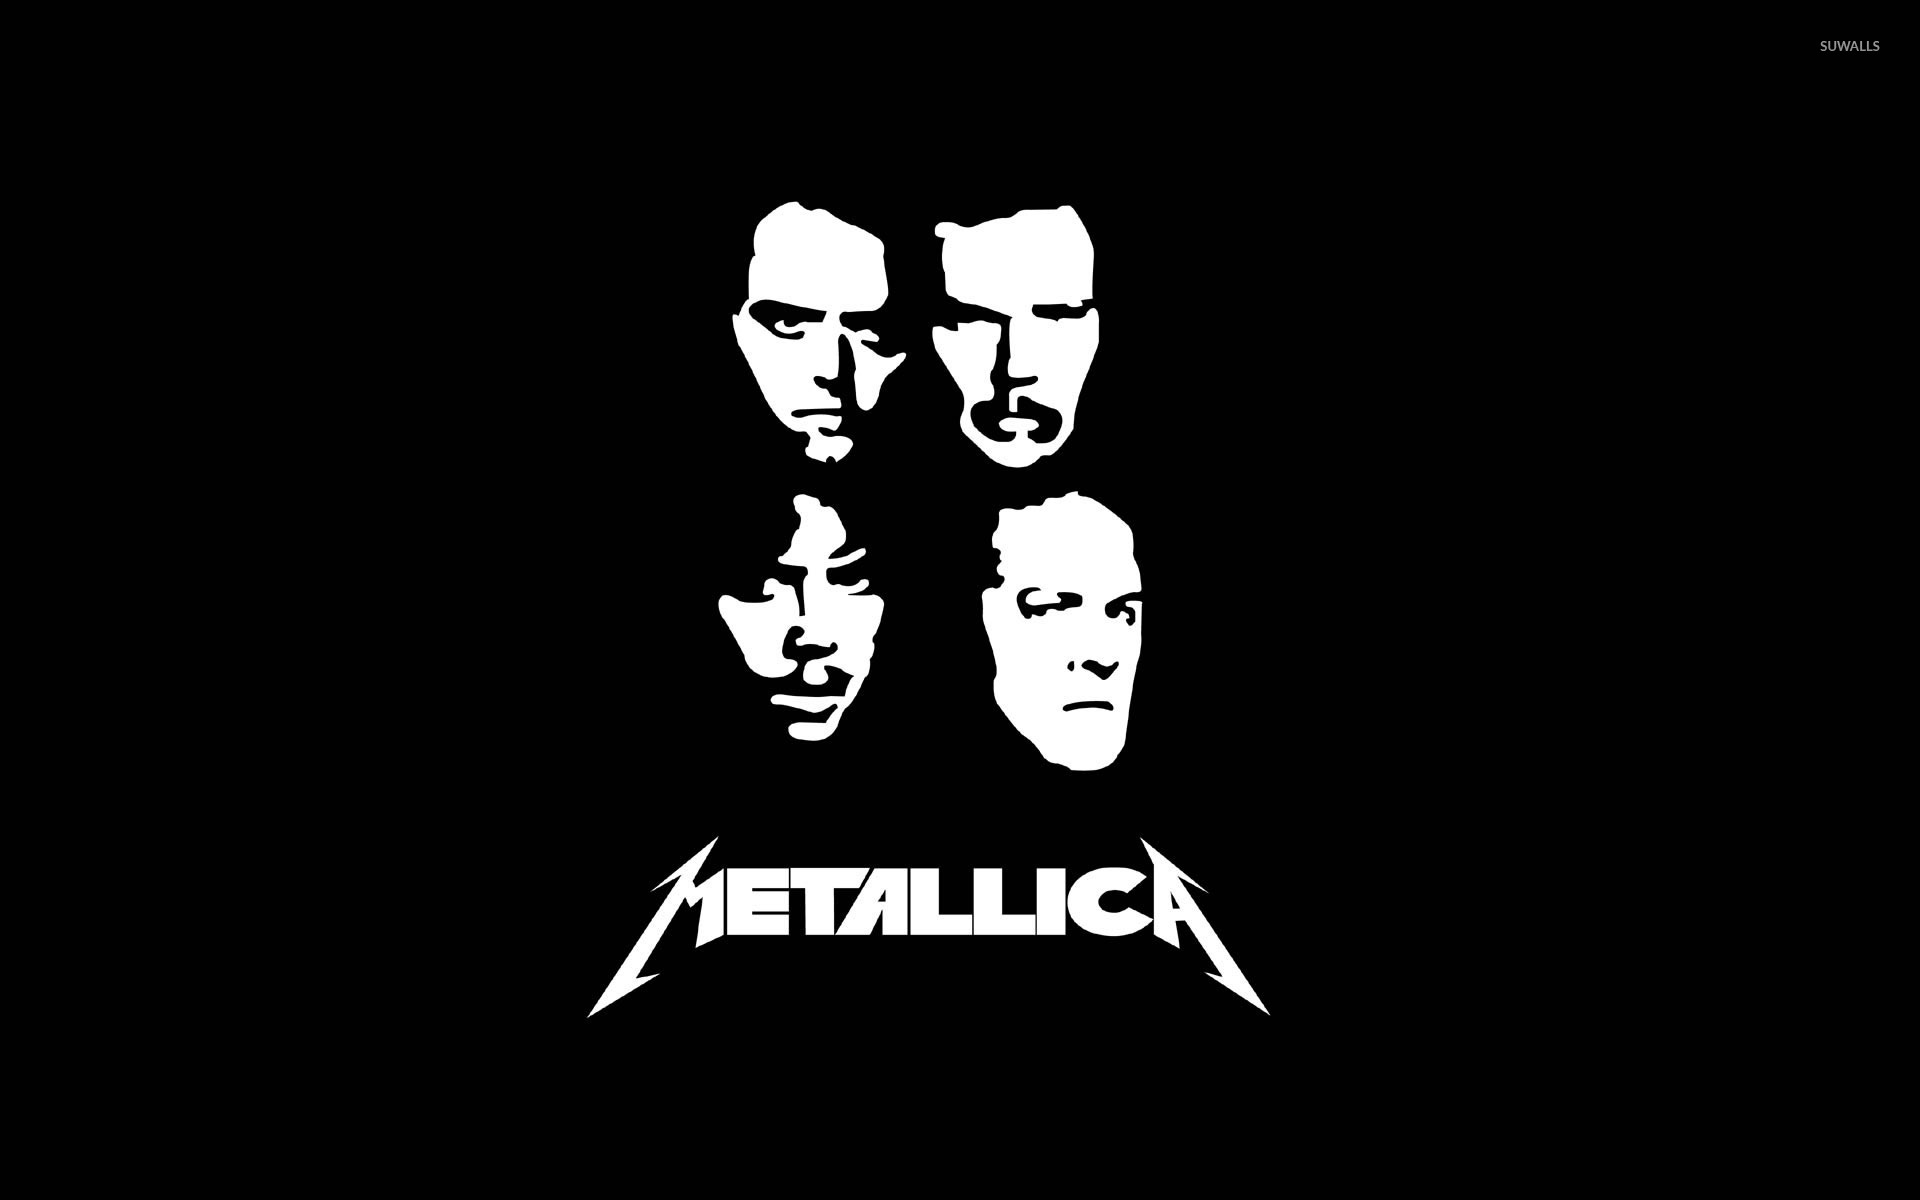 Cool Wallpaper High Resolution Metallica - metallica-28327-1920x1200  Best Photo Reference_91336.jpg